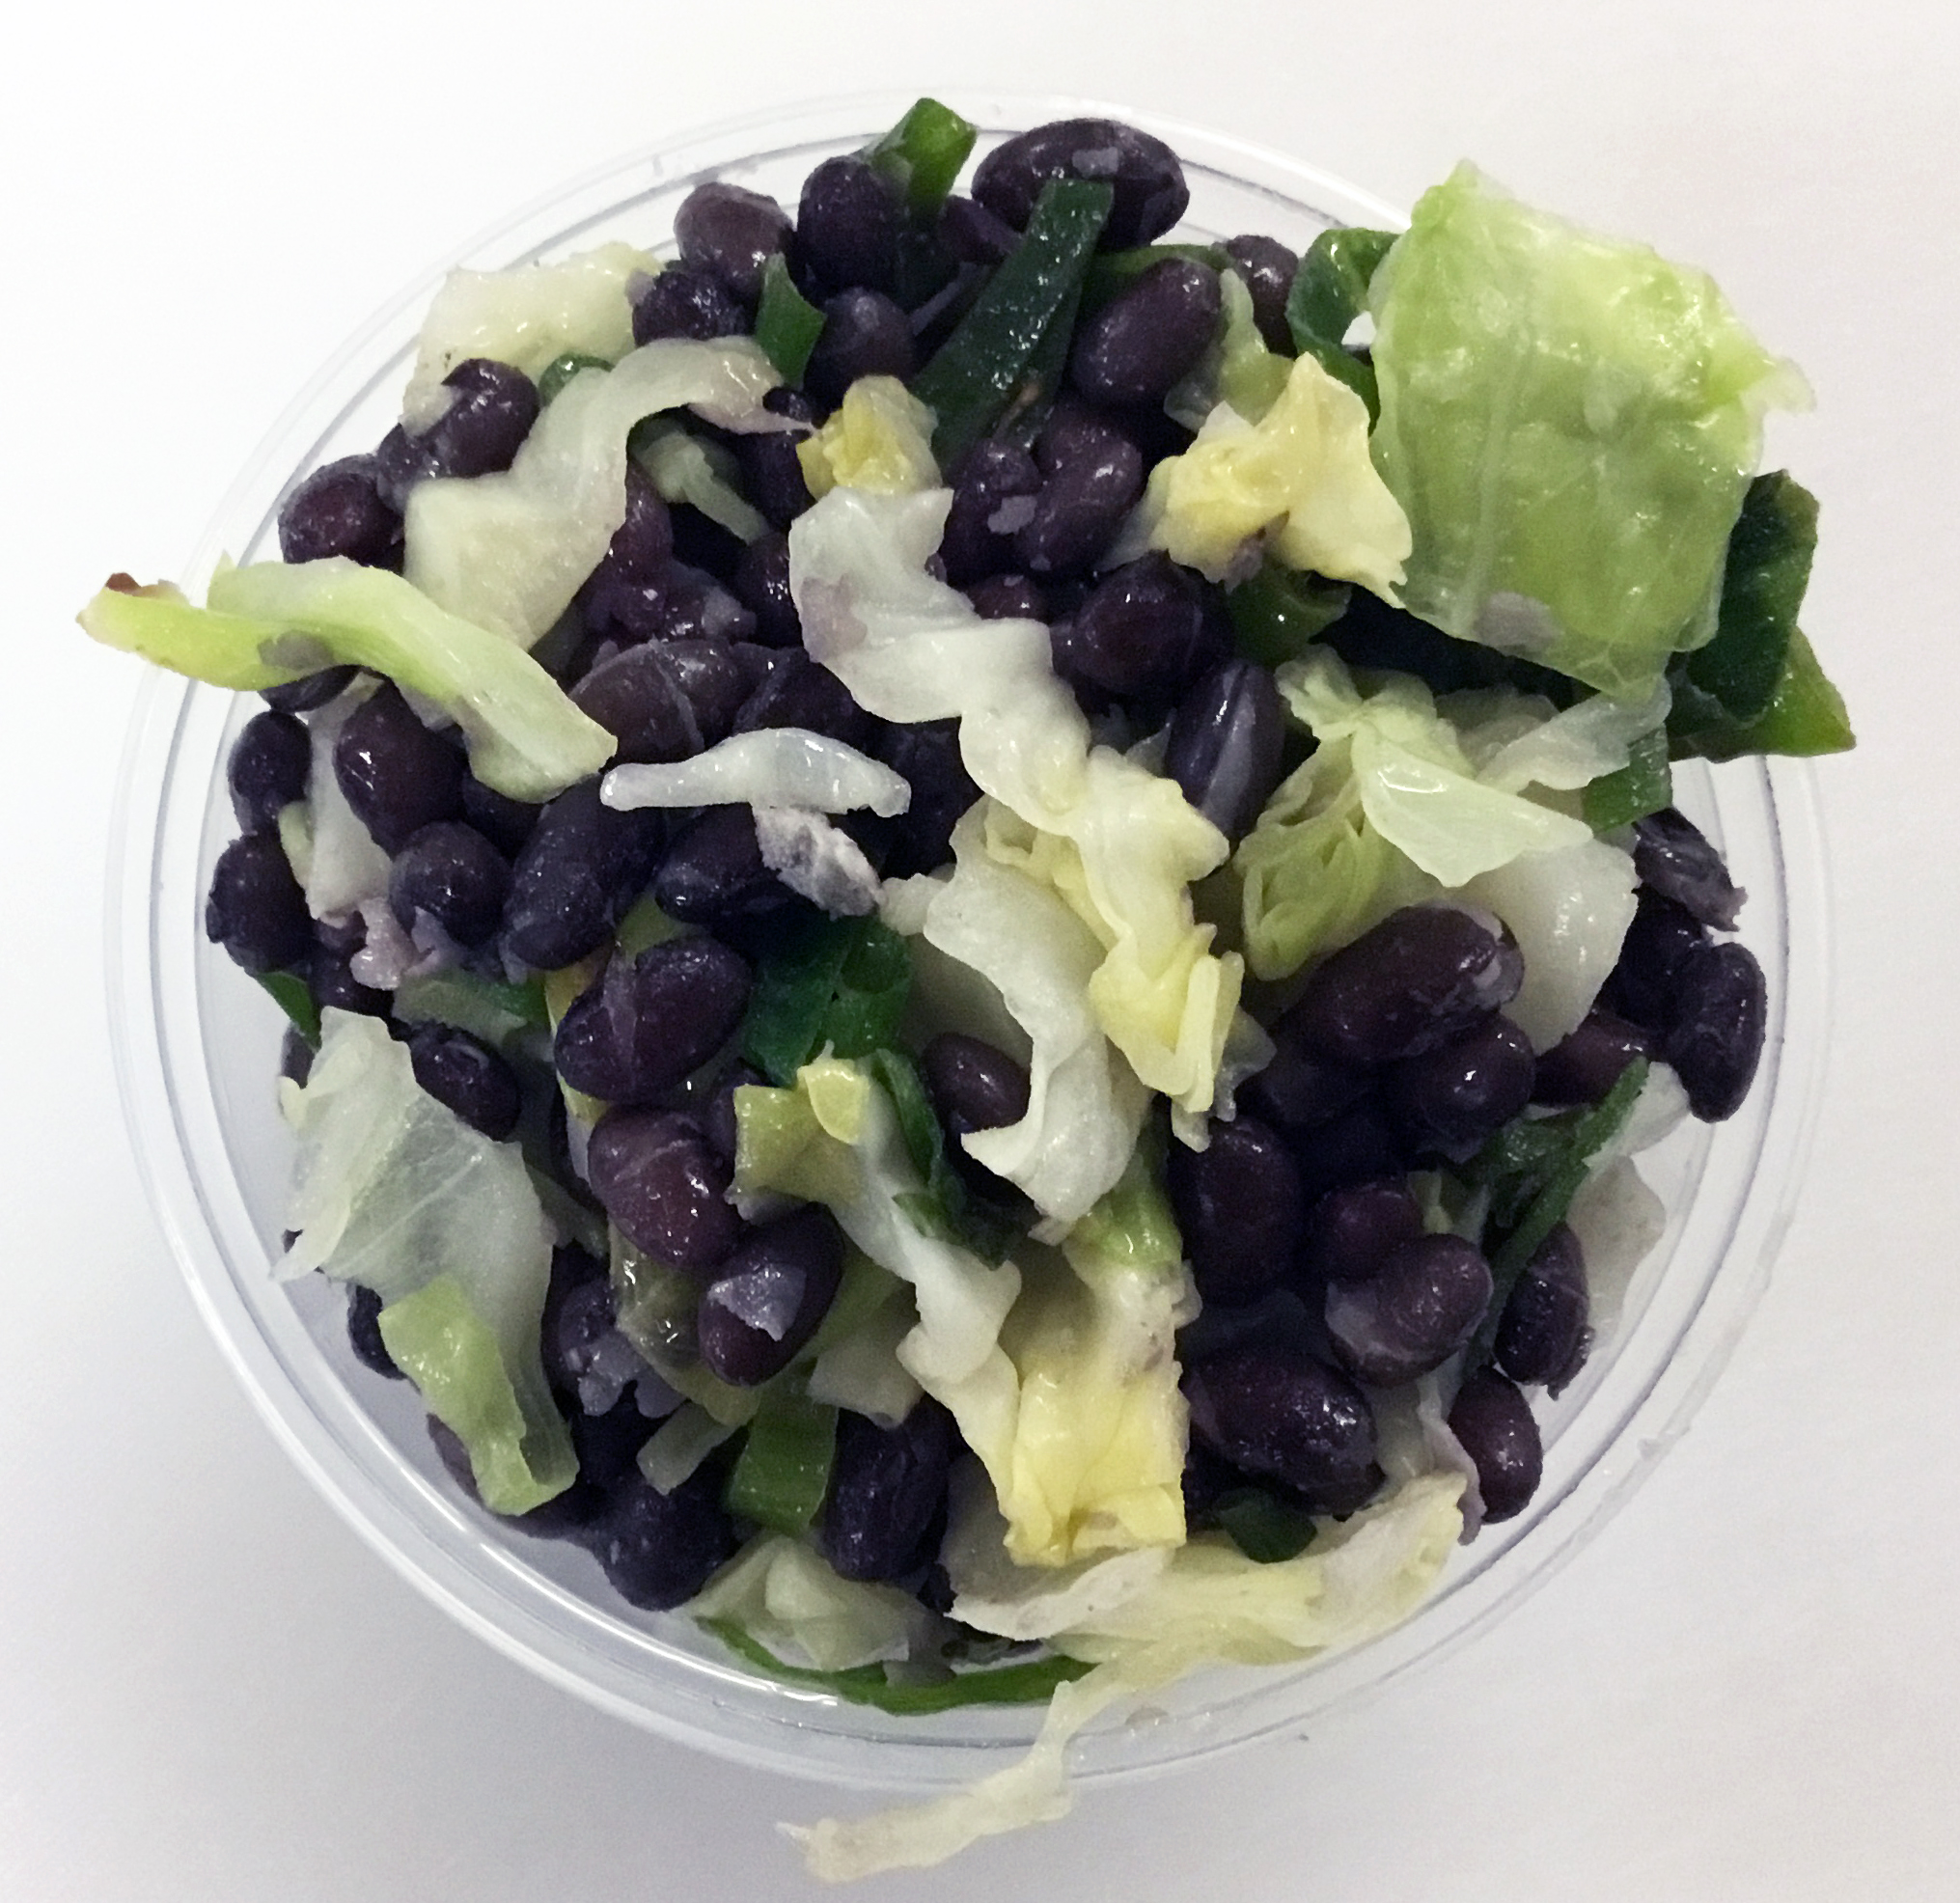 Black beans with green cabbage, scallions and an umeboshi vinegar dressing.